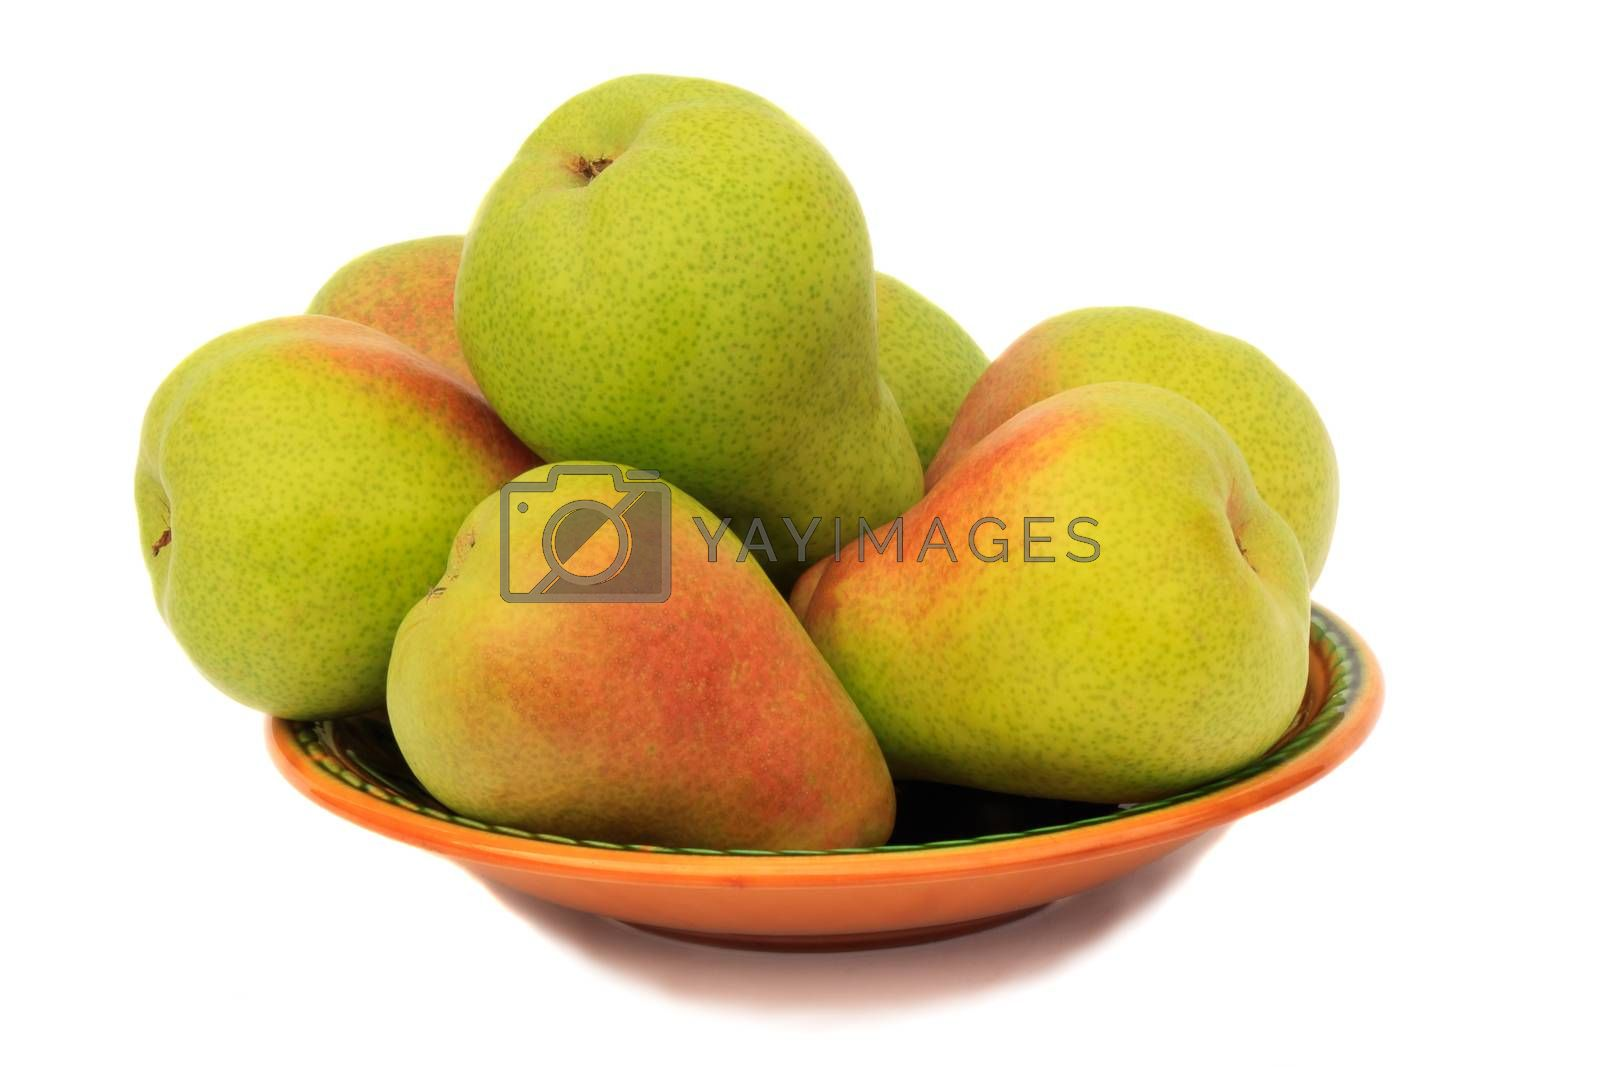 Large ripe yellow pears on a ceramic plate. Presented on a white background.